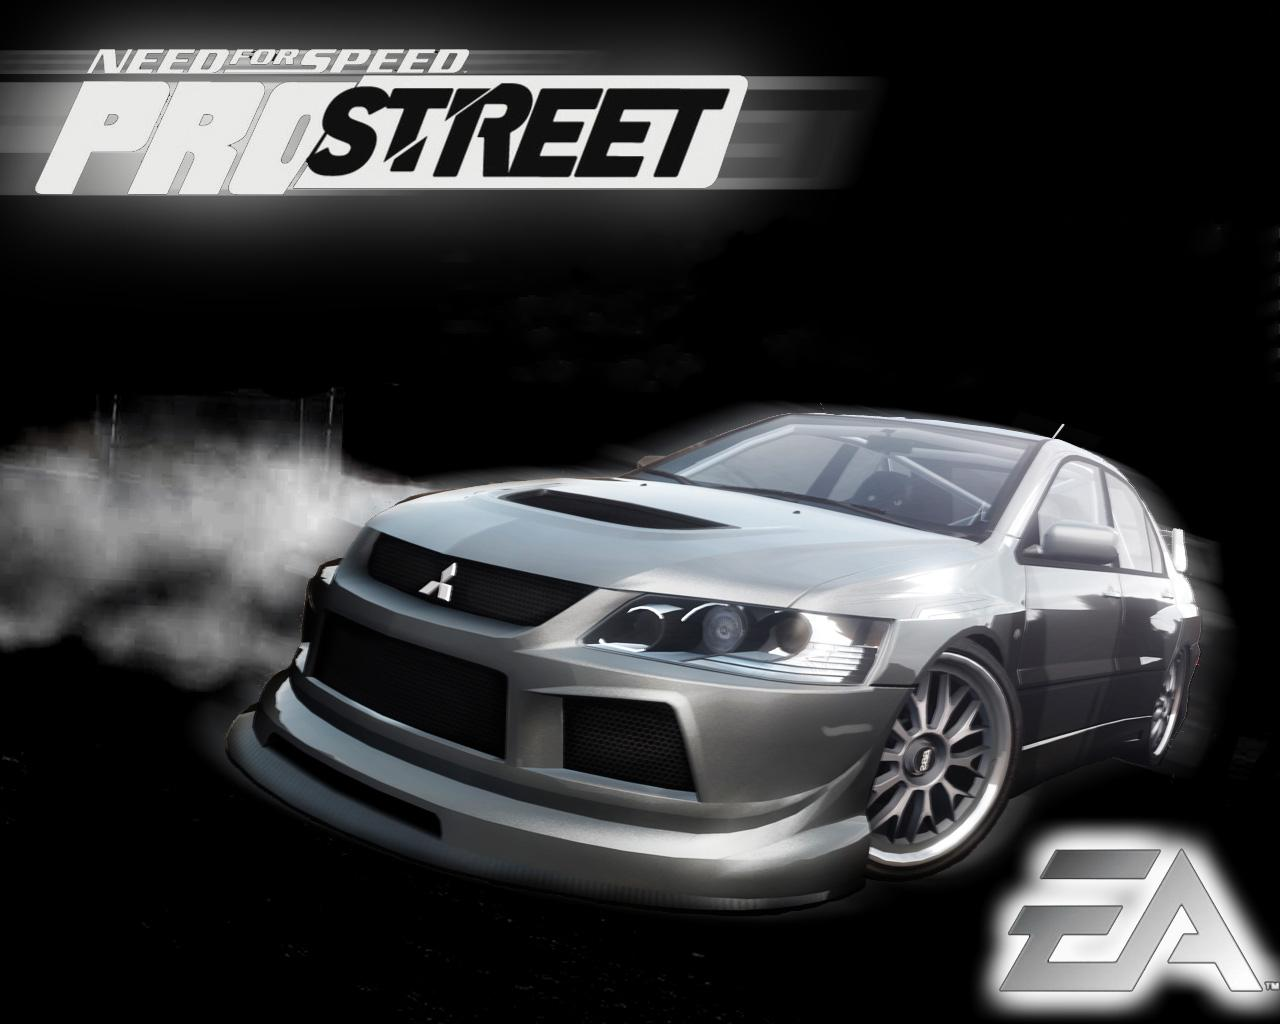 Wallpaper need for speed need for speed pro street games.